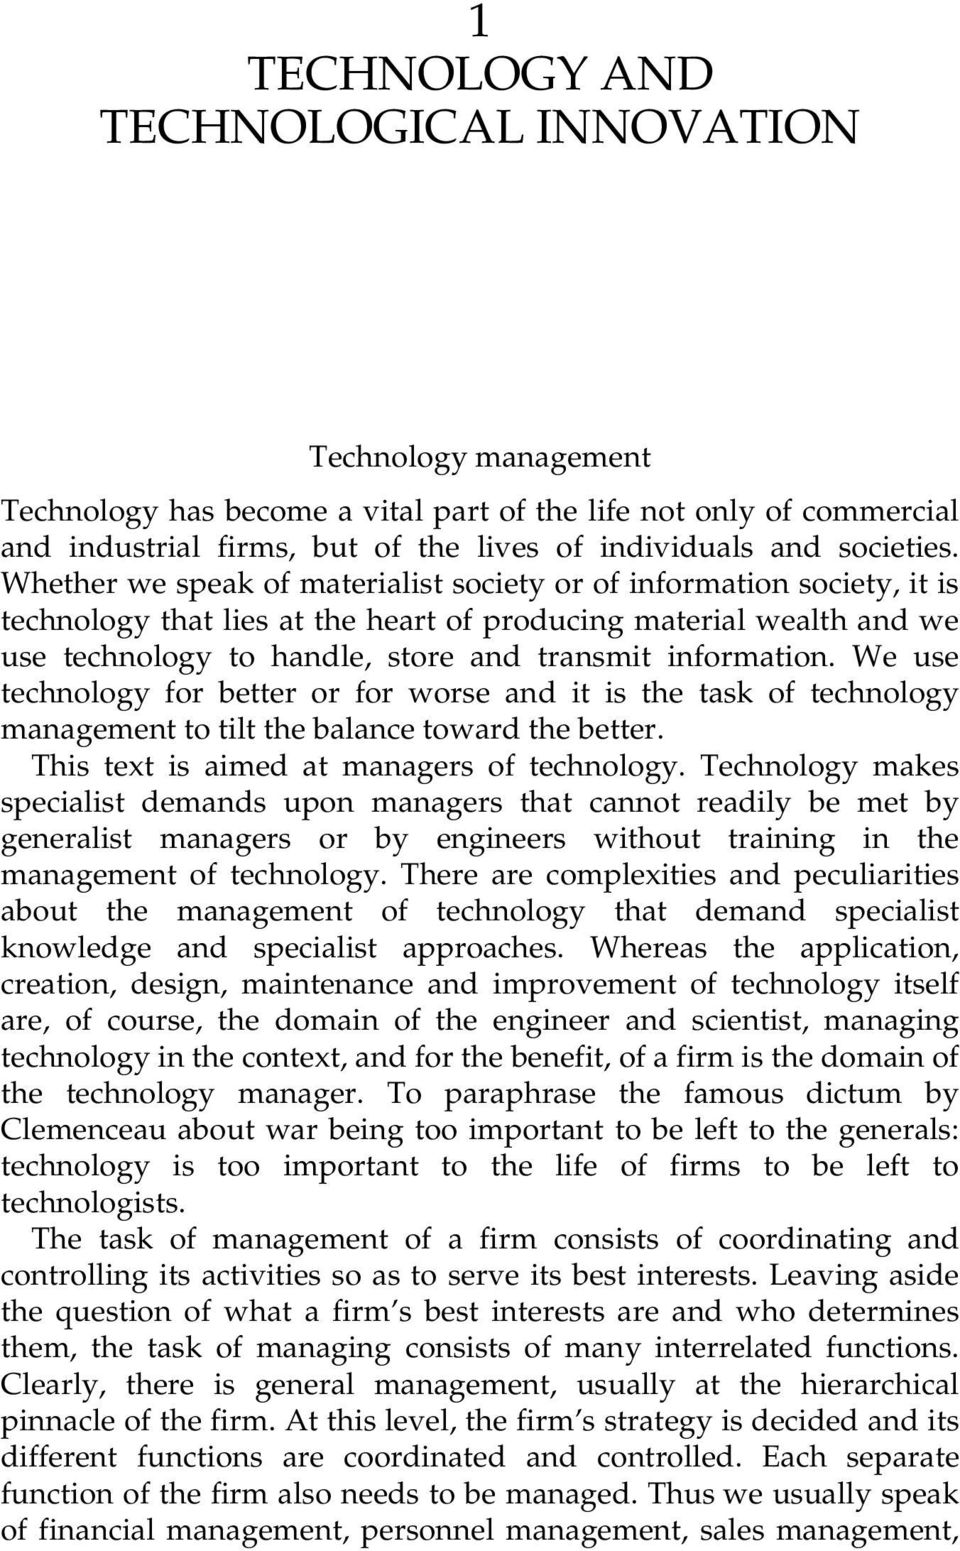 Whether we speak of materialist society or of information society, it is technology that lies at the heart of producing material wealth and we use technology to handle, store and transmit information.